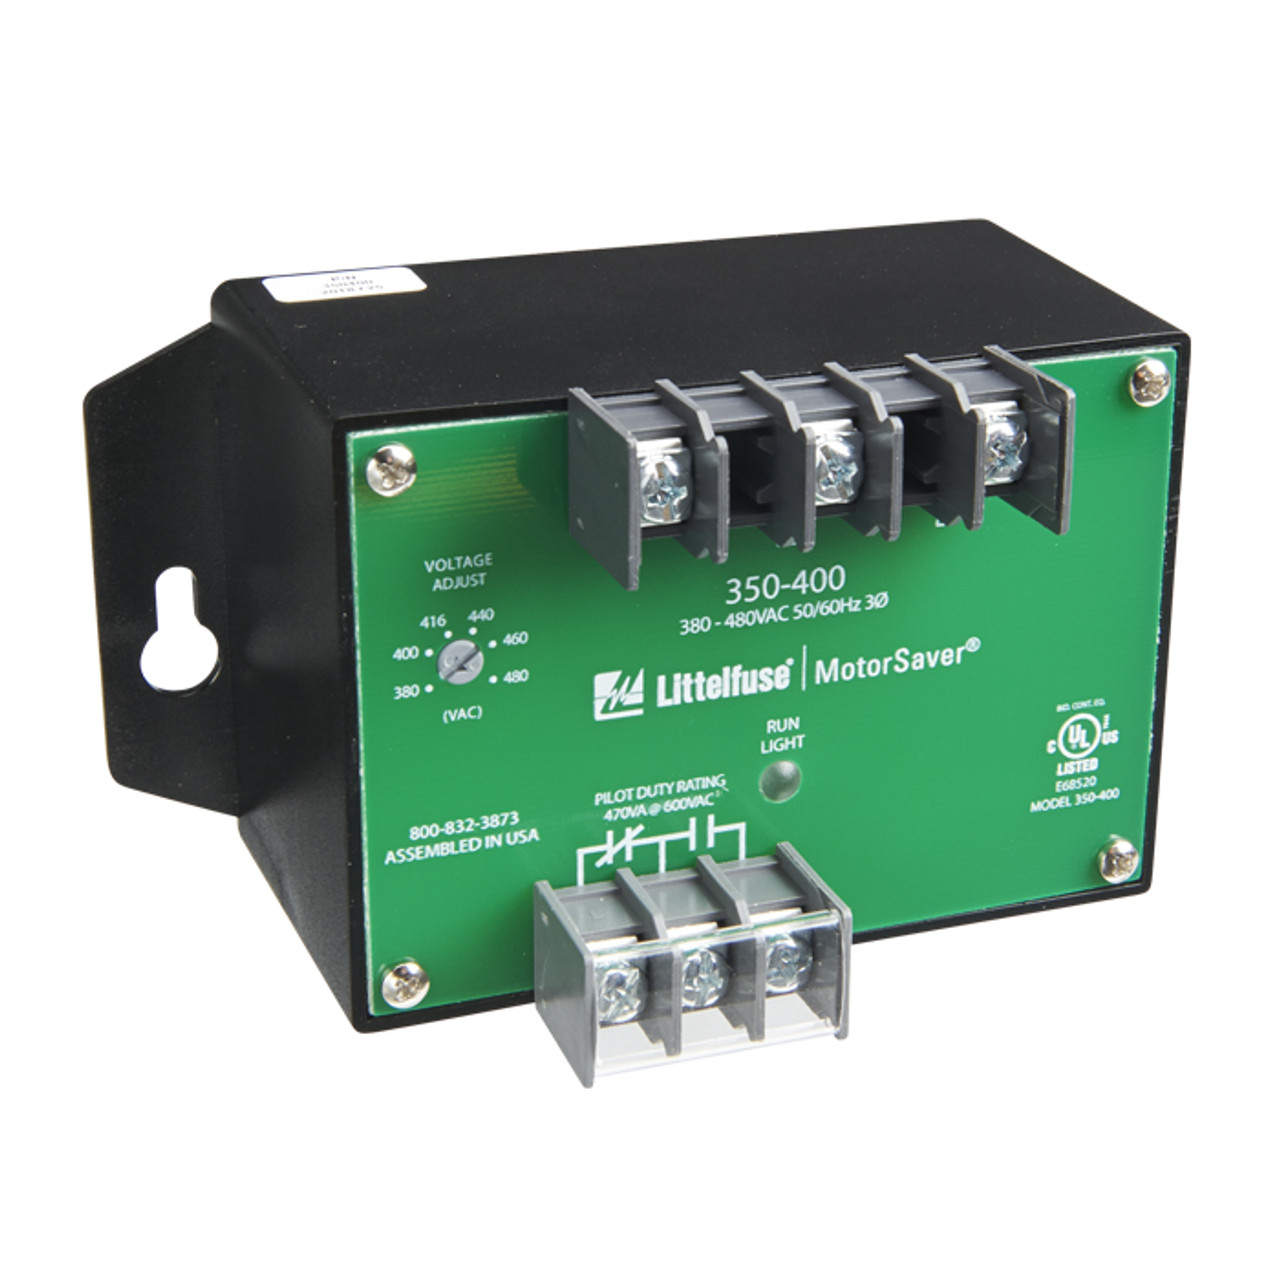 3-PHASE VOLTAGE MONITOR/ 190-2